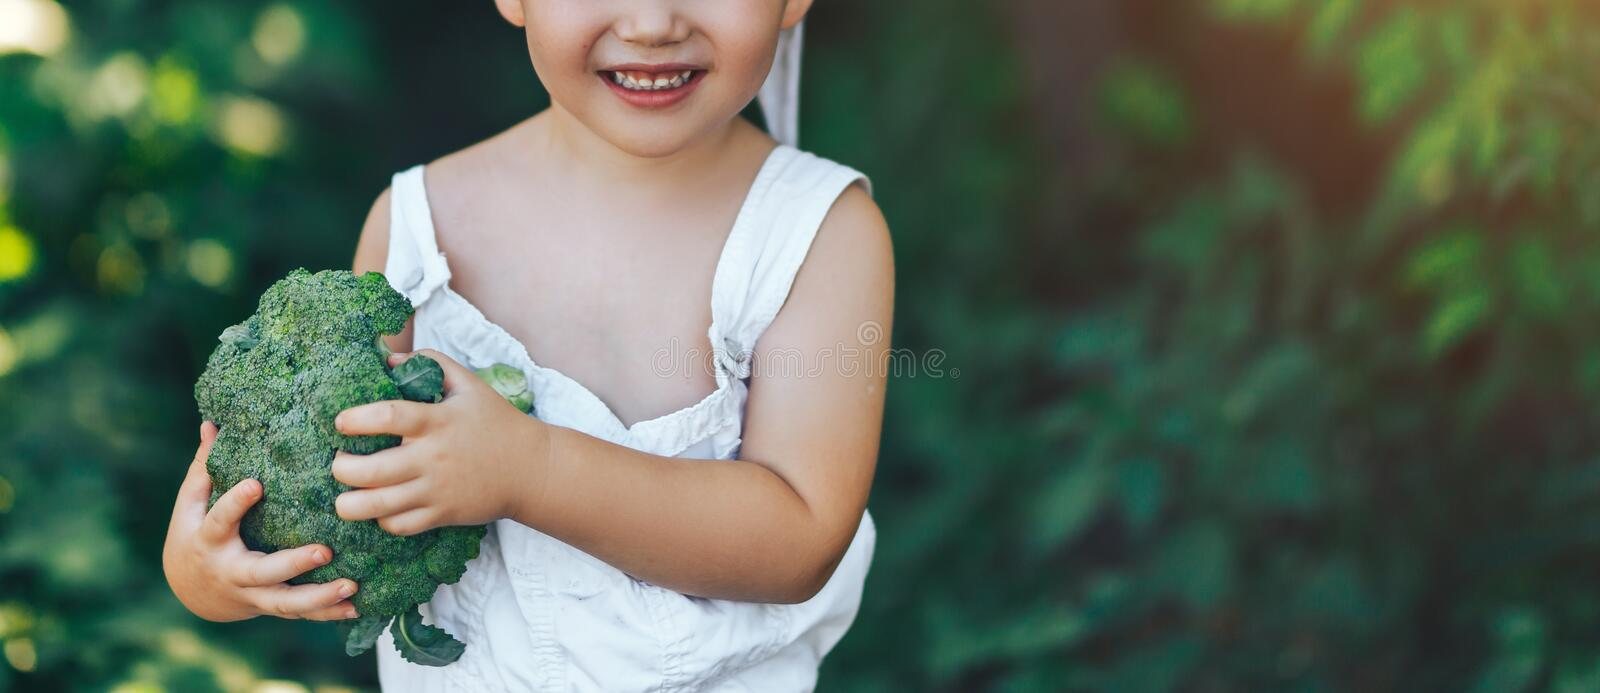 Litle happy smiling farmer boy in white overalls and grey hairband holding fresh organic broccoli in hands. garden, harvest season stock photo